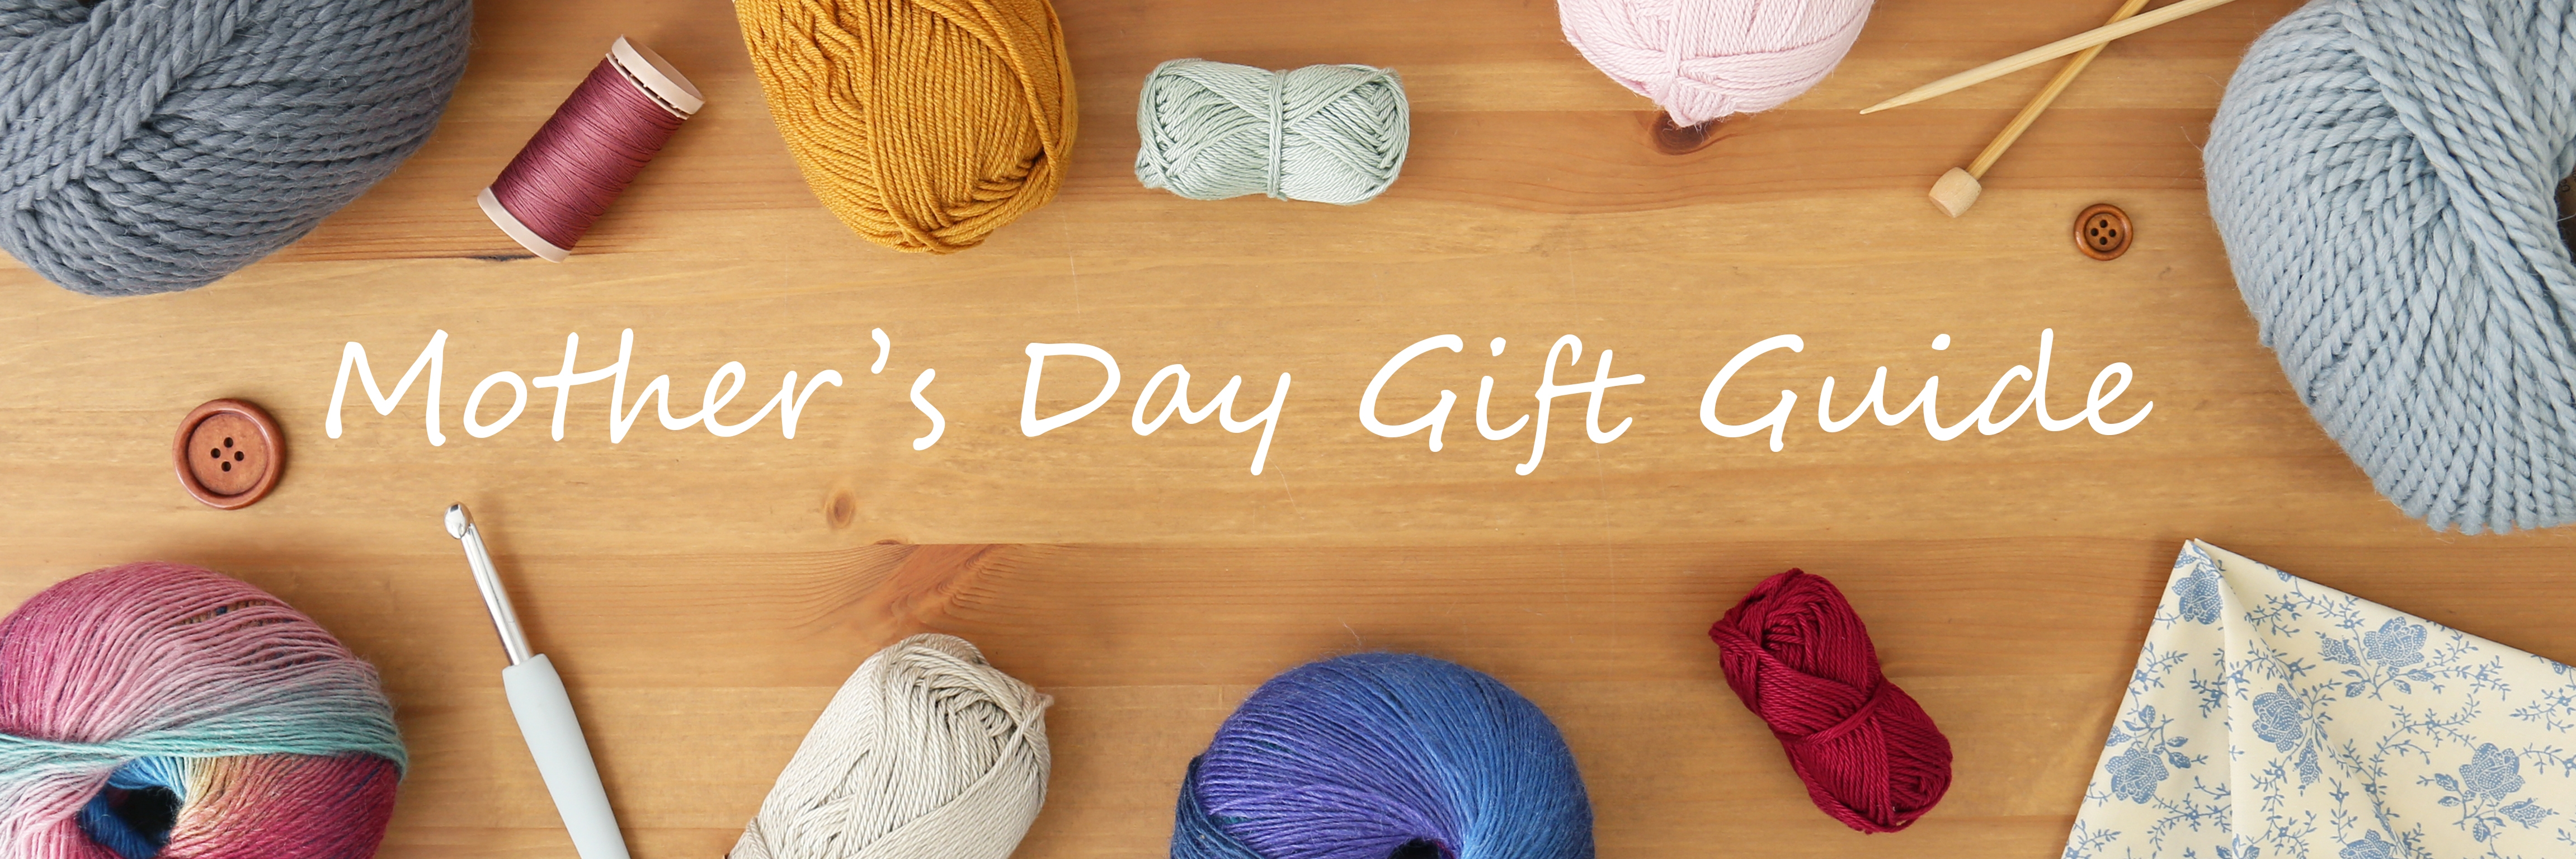 Mother's Day Gift Guide header image